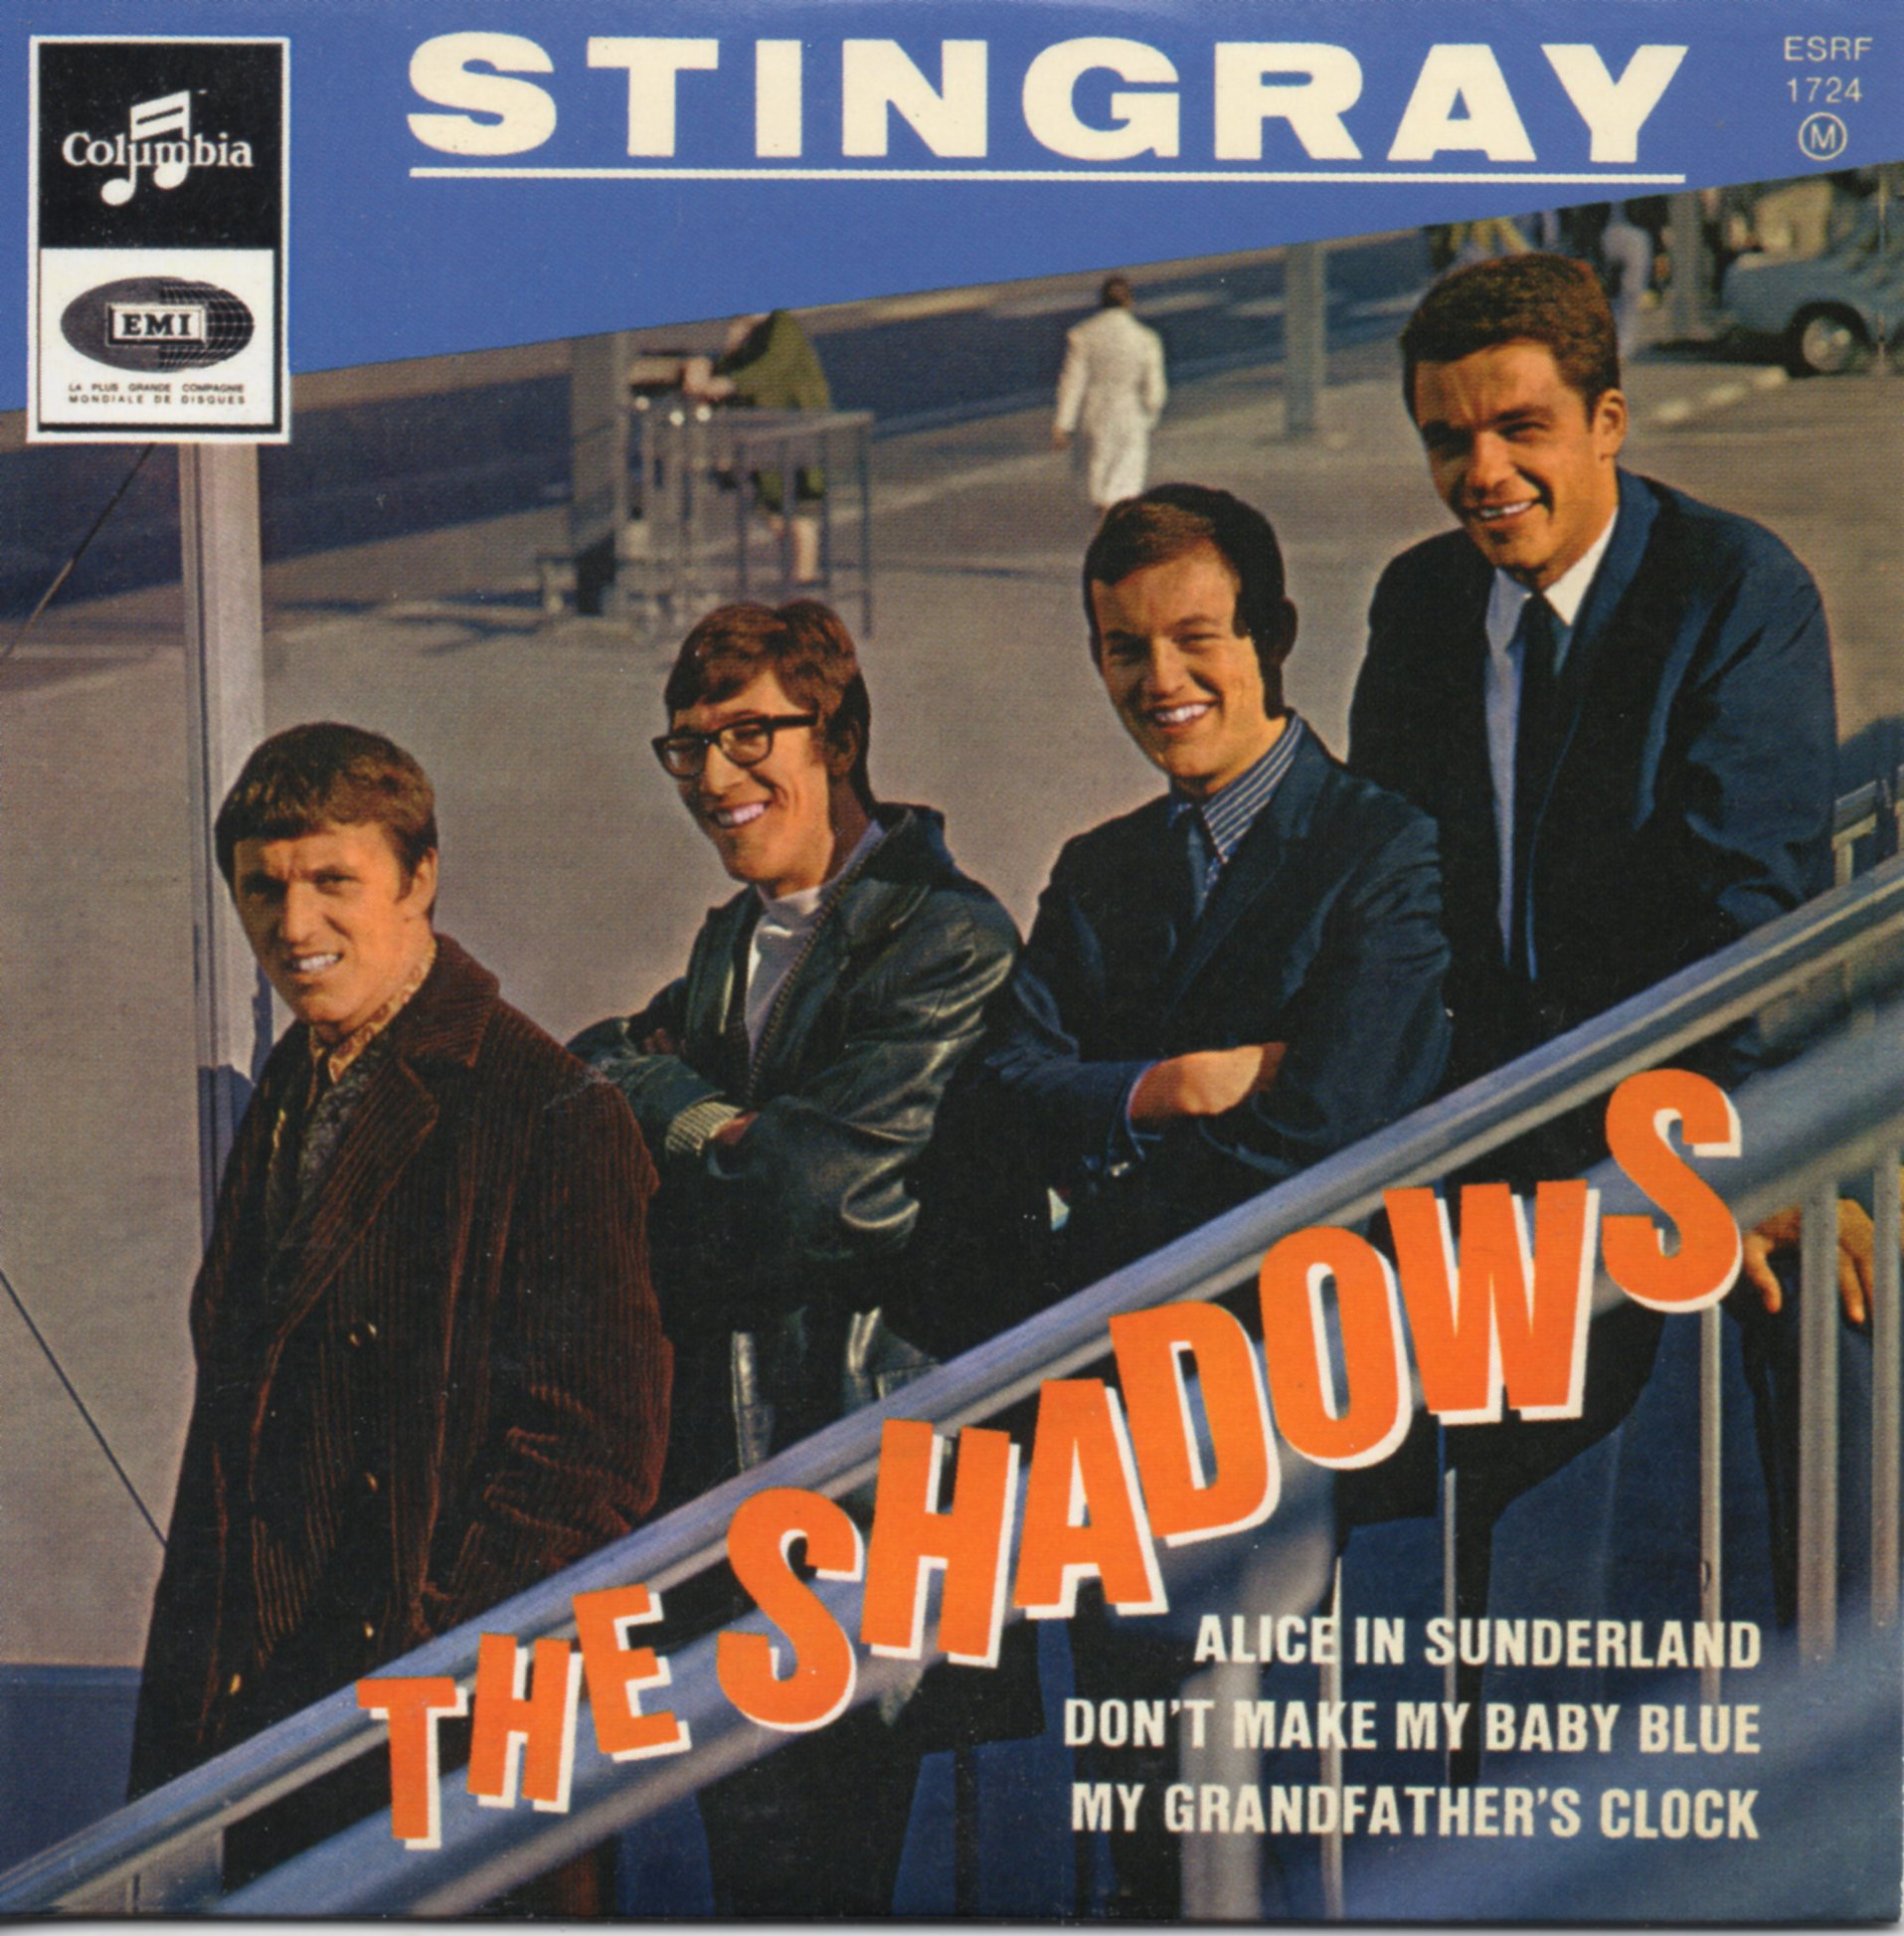 THE SHADOWS - Stingray - EP REPLICA - 4-track CARD SLEEVE - CD single